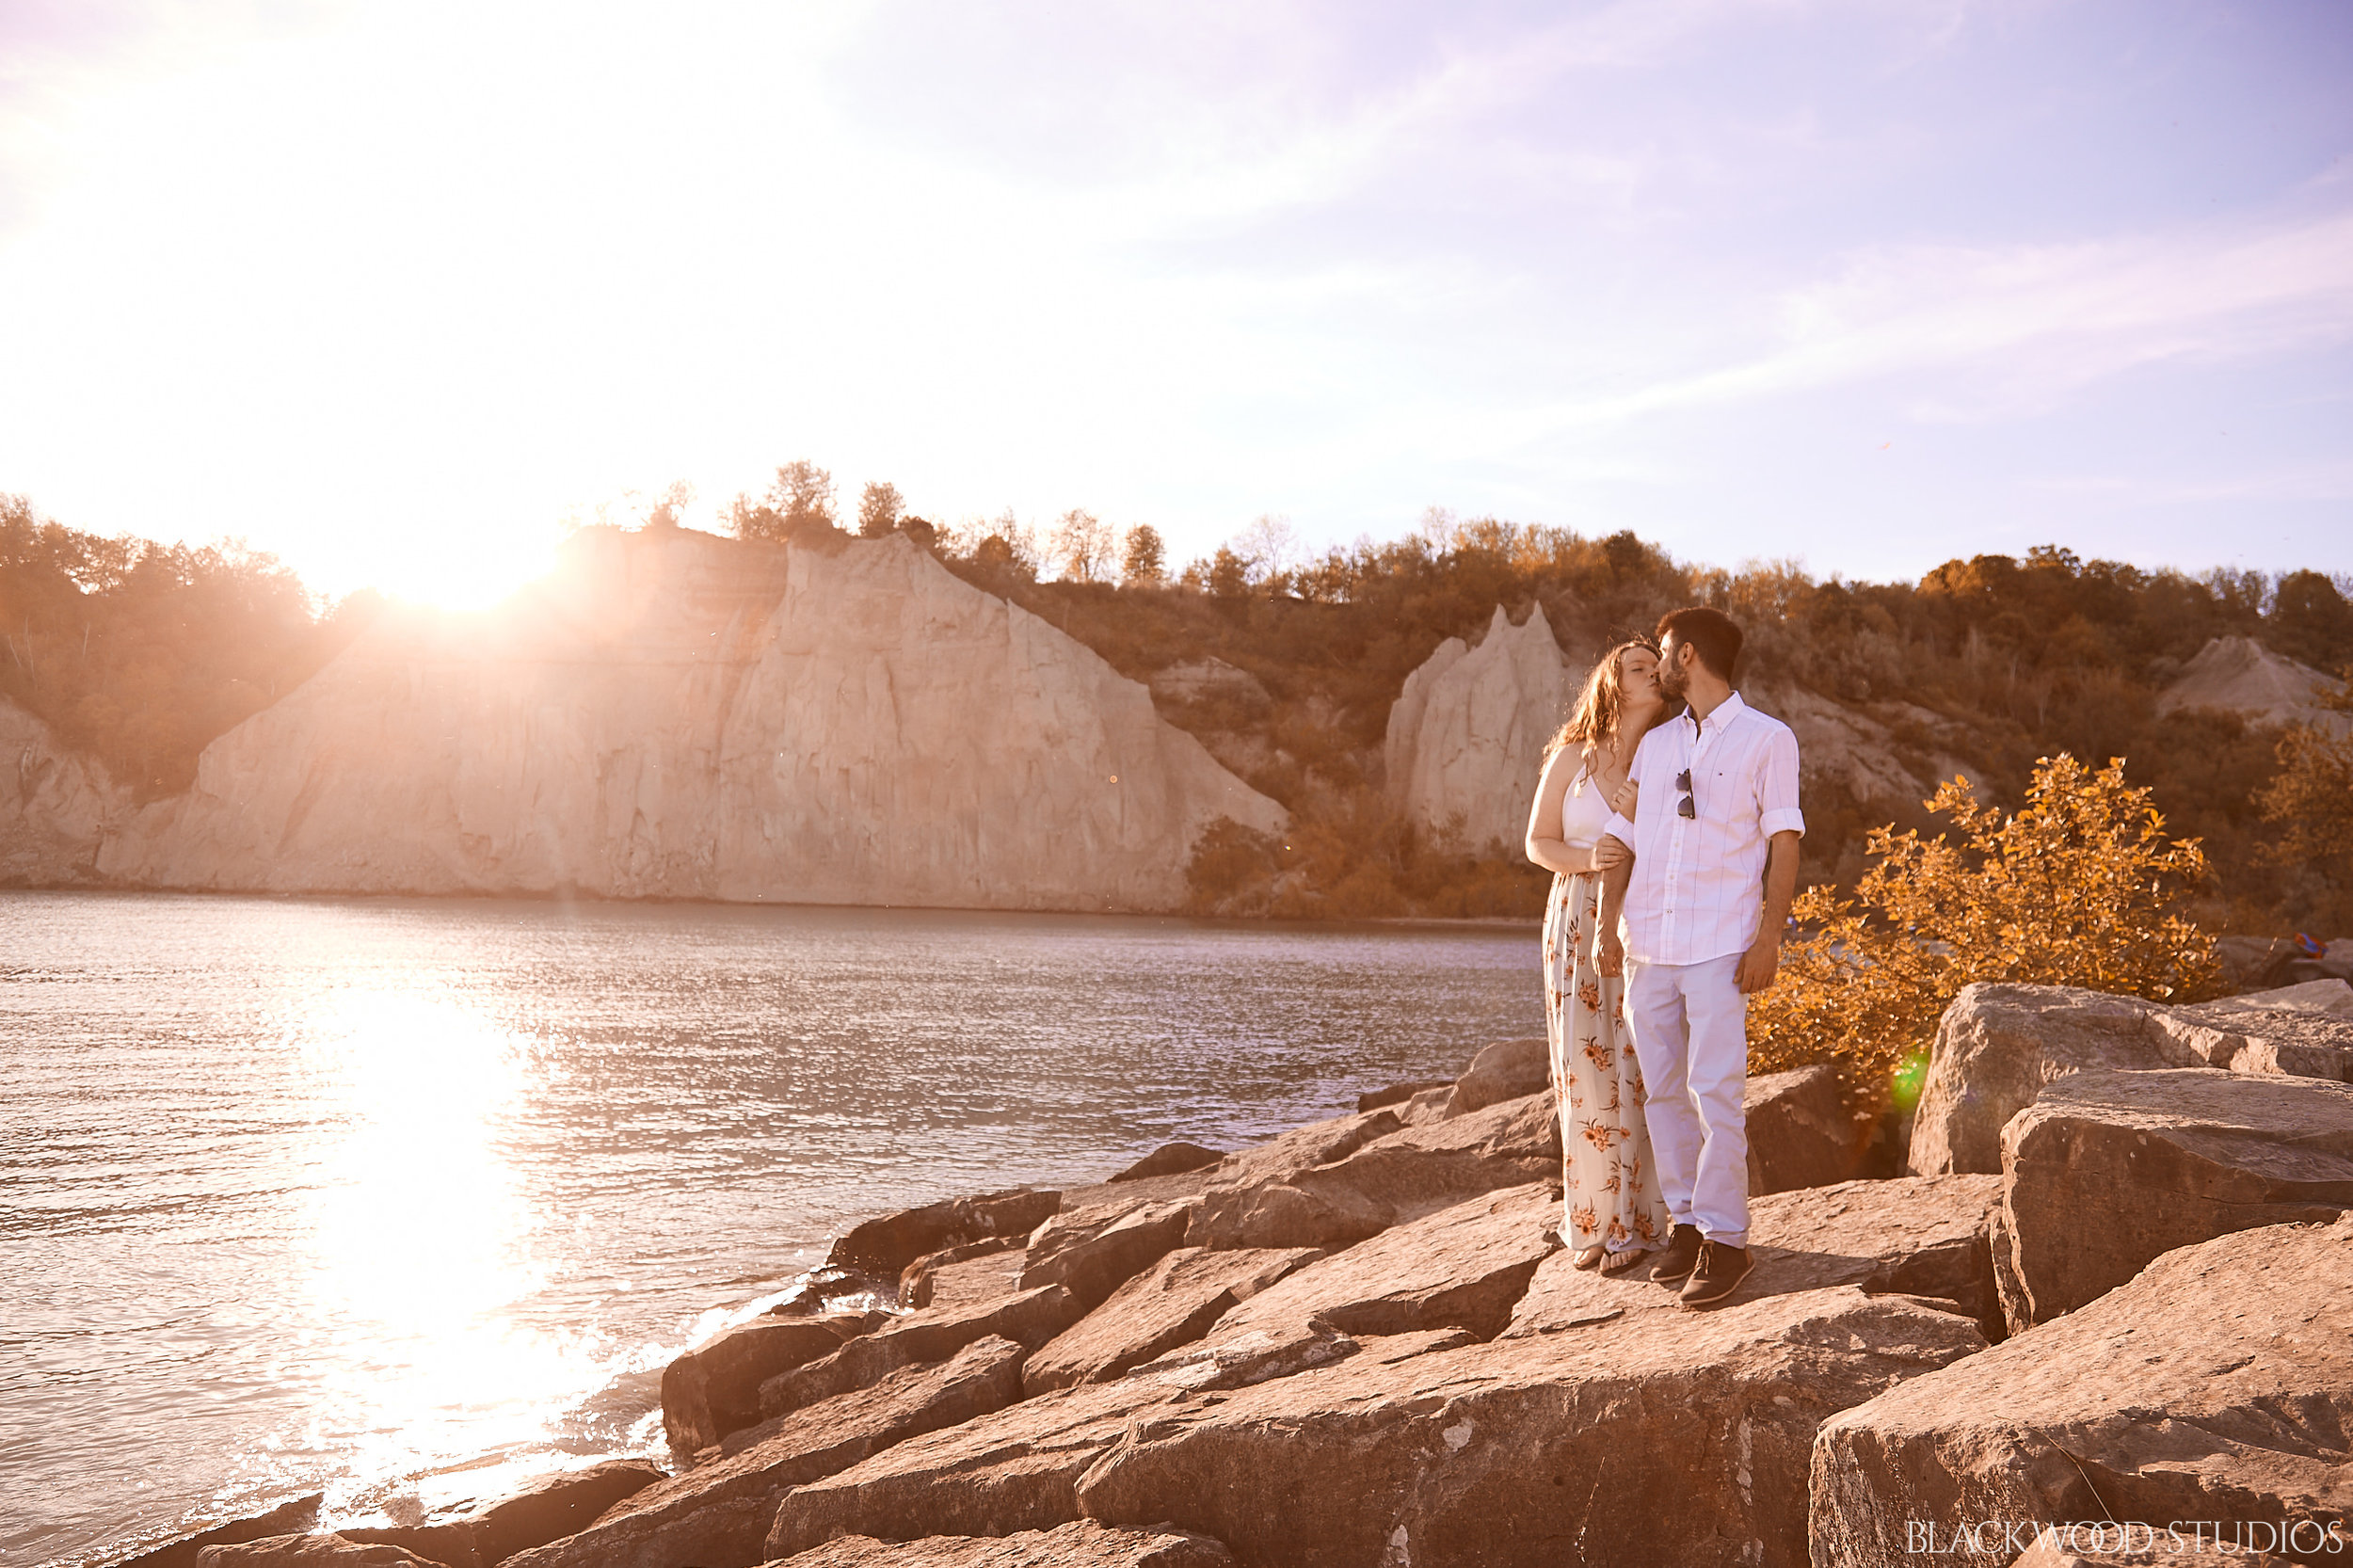 Blackwood-Studios-Photography-20190608193959-Brianna-Bryan-Engagement-Scarbourgh-Bluffs-Park-Ontario-Canada.jpg